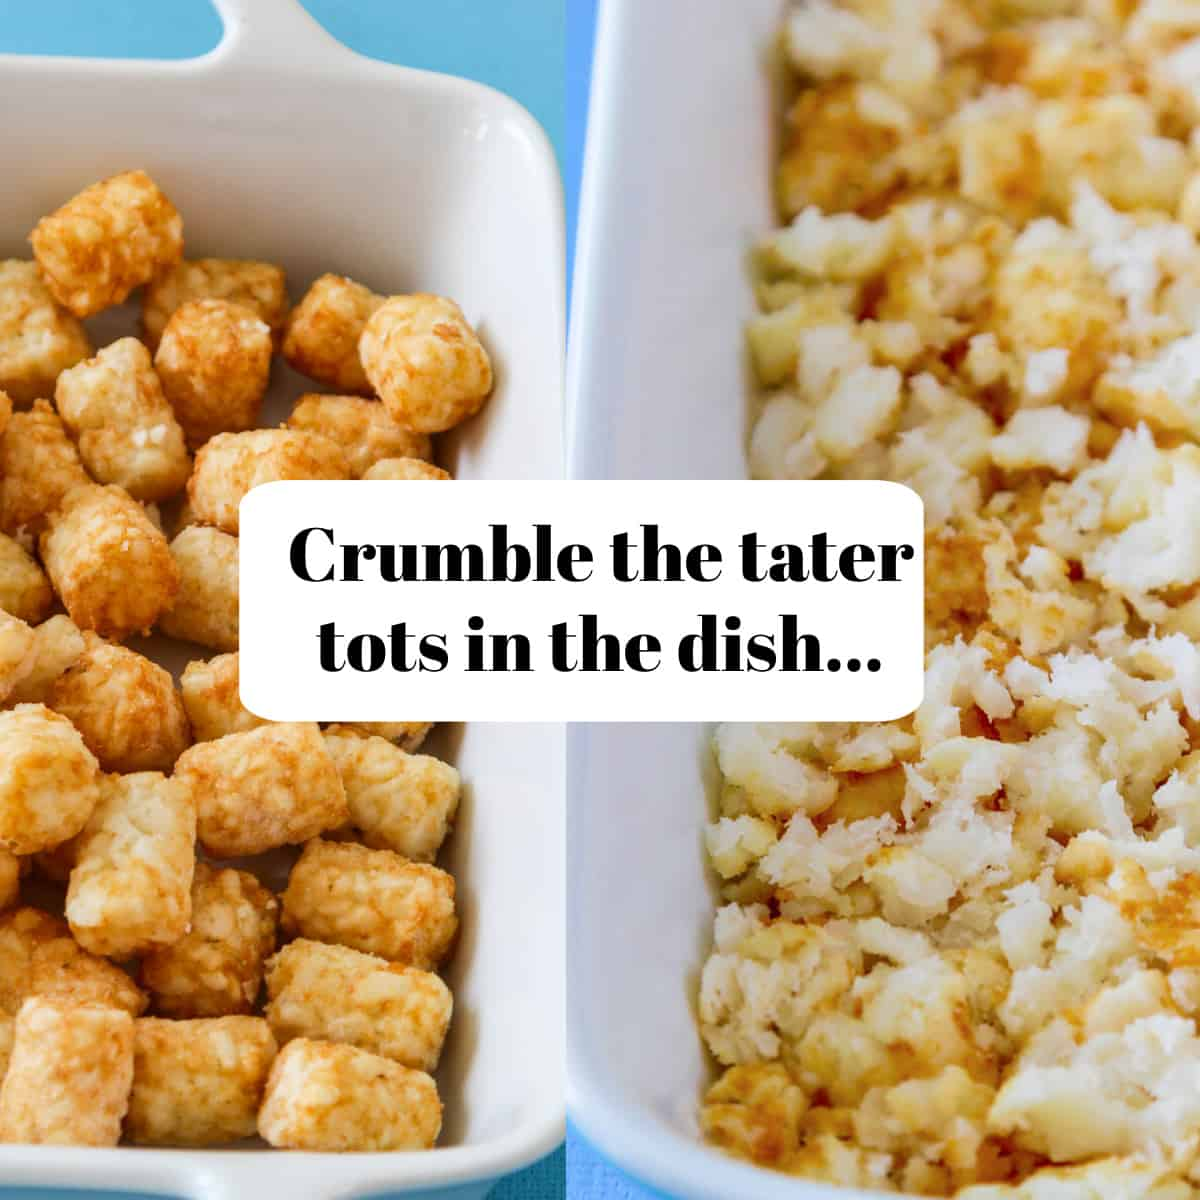 Two white casserole dishes side by side one with whole and the other with crumbled tater tots for a recipe.